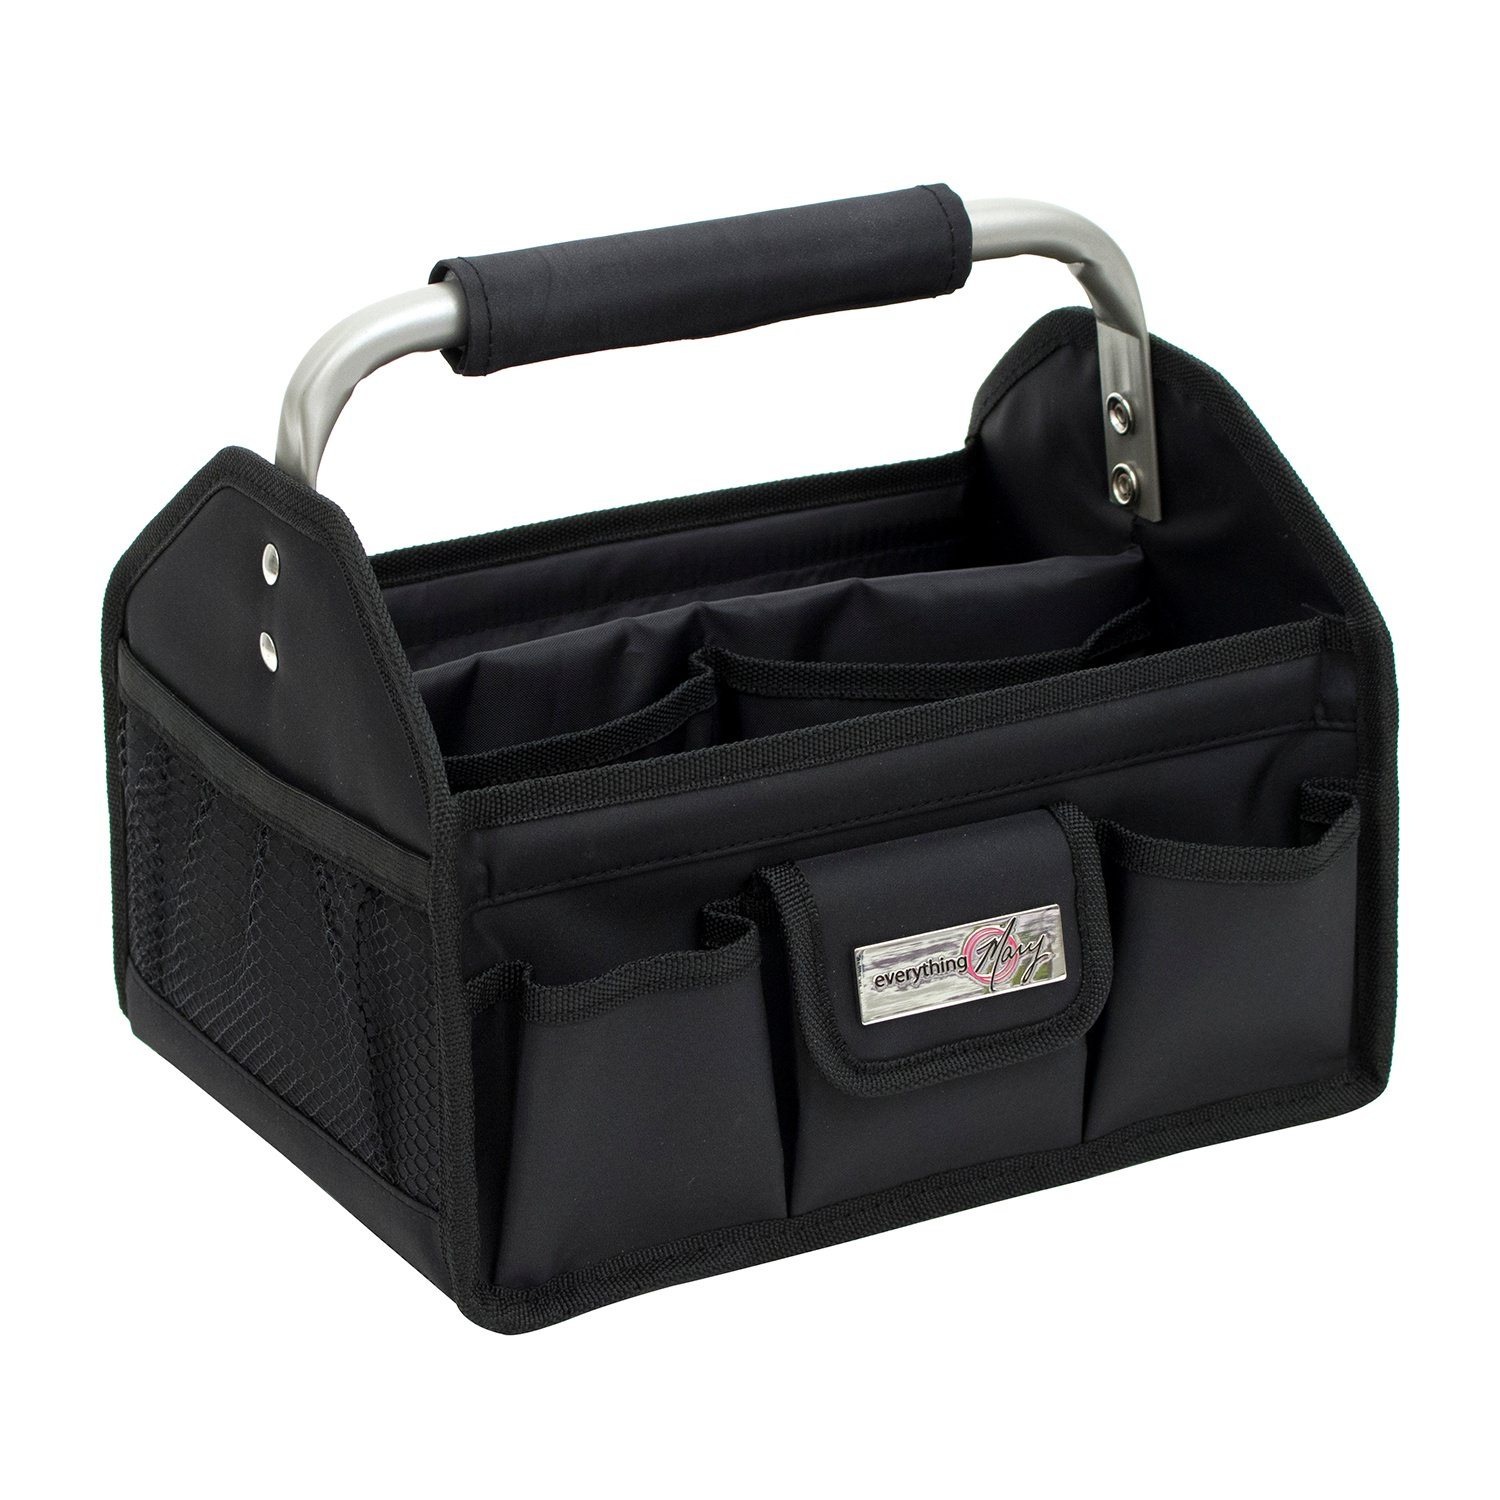 Everything Mary Black Craft Tool Box with Metal Handle by EVERYTHING MARY LLC